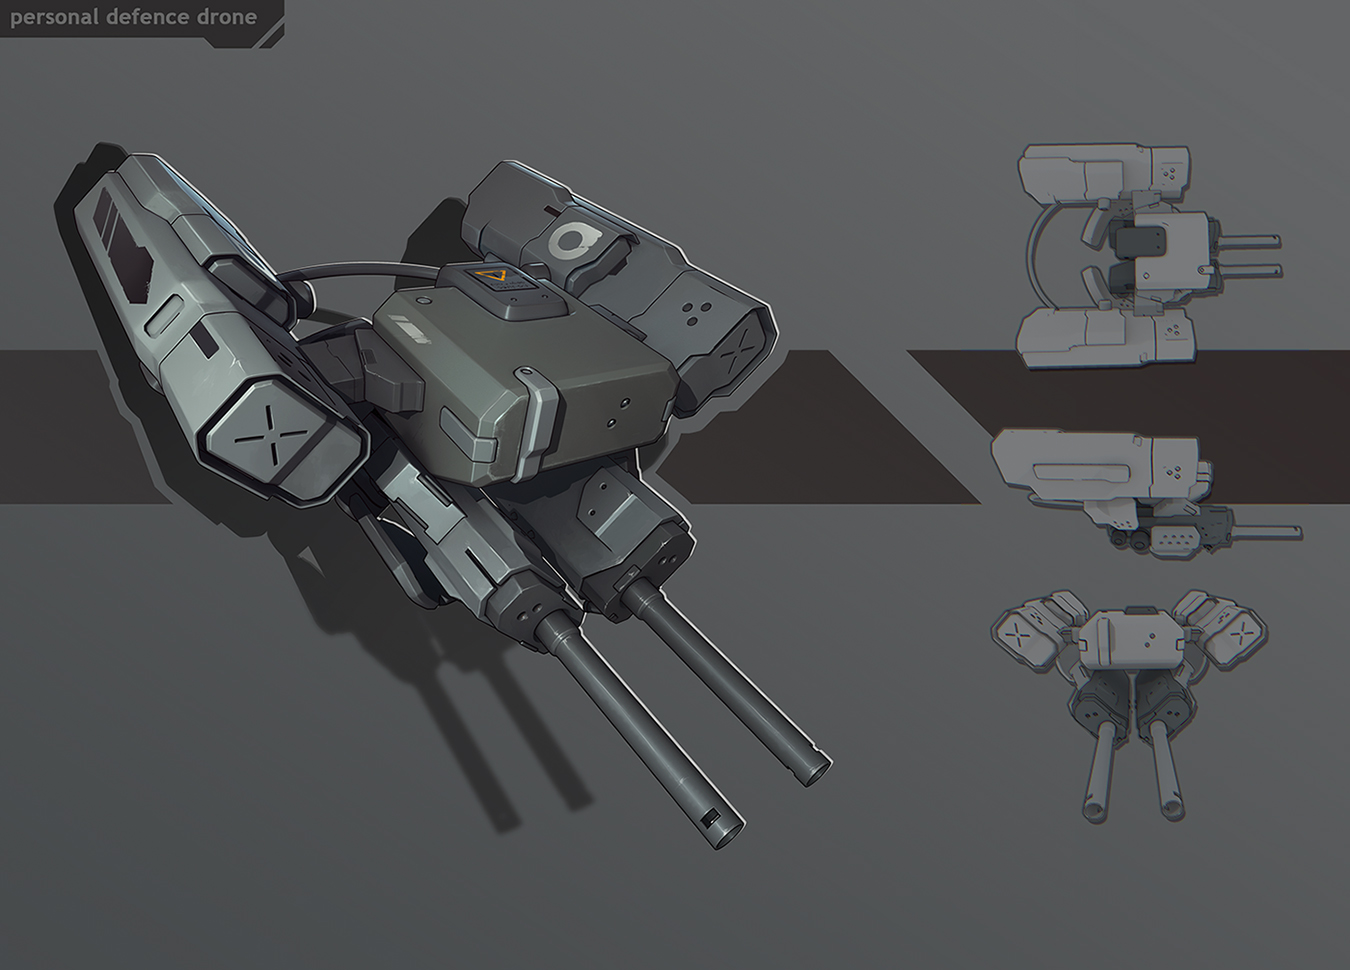 Drone by SoundHunter